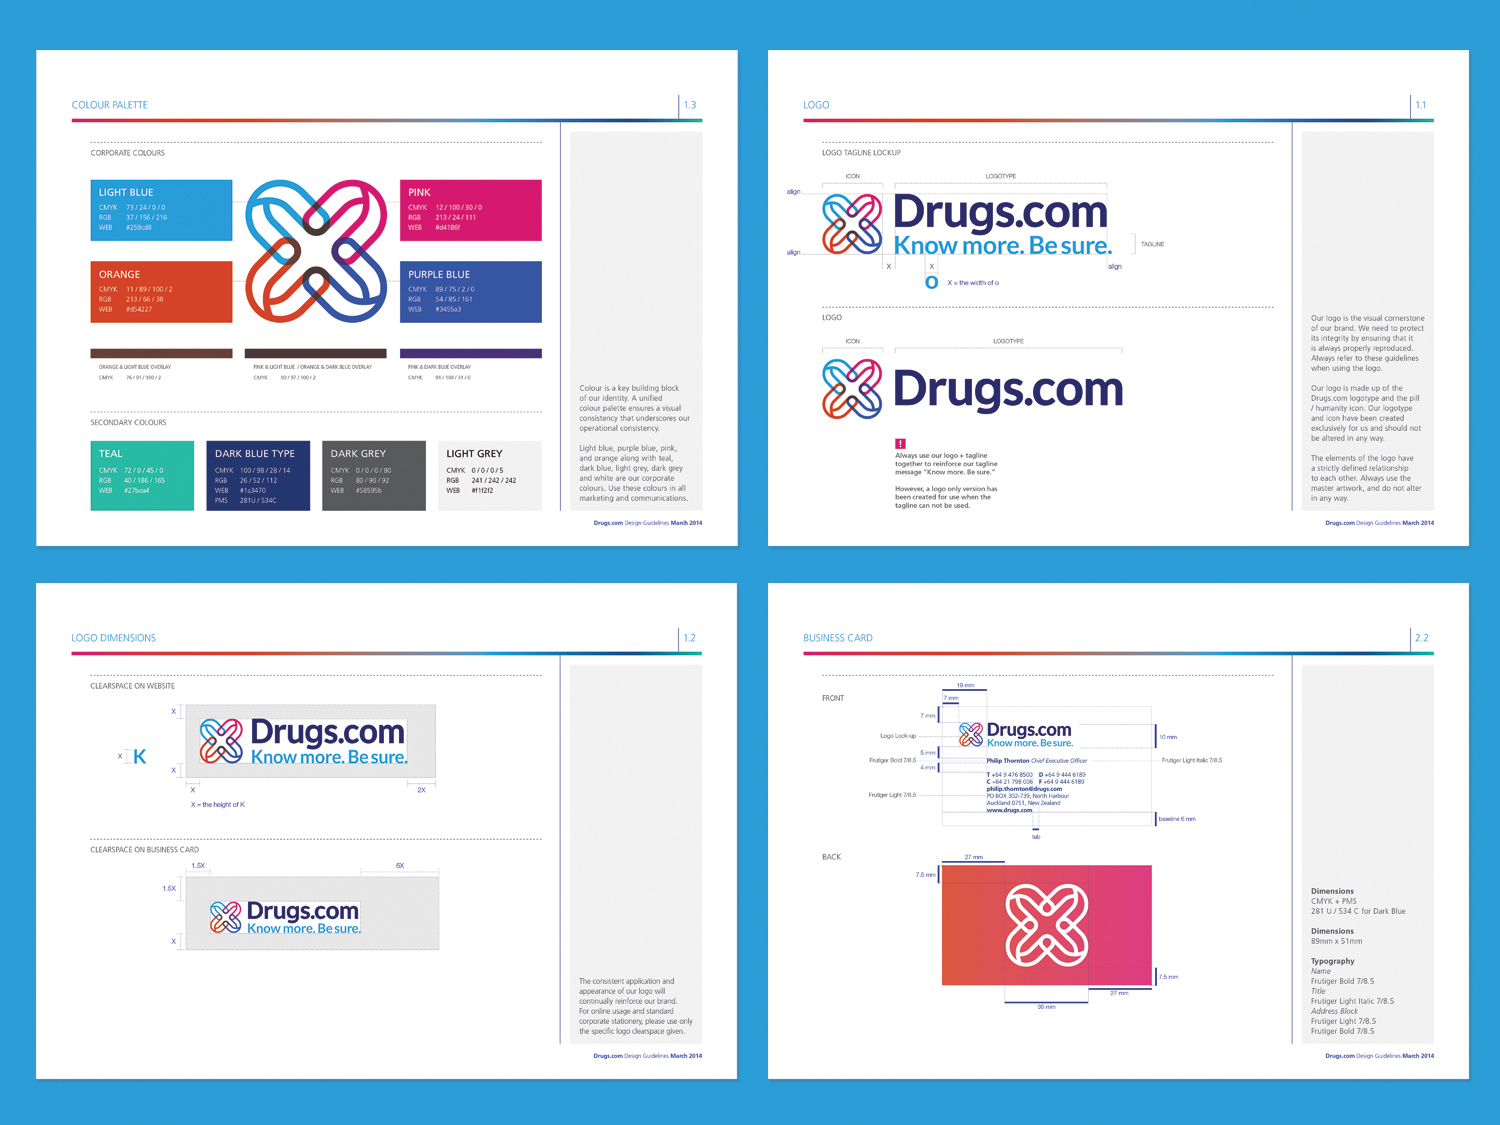 Image of Drugs.com guidelines pages